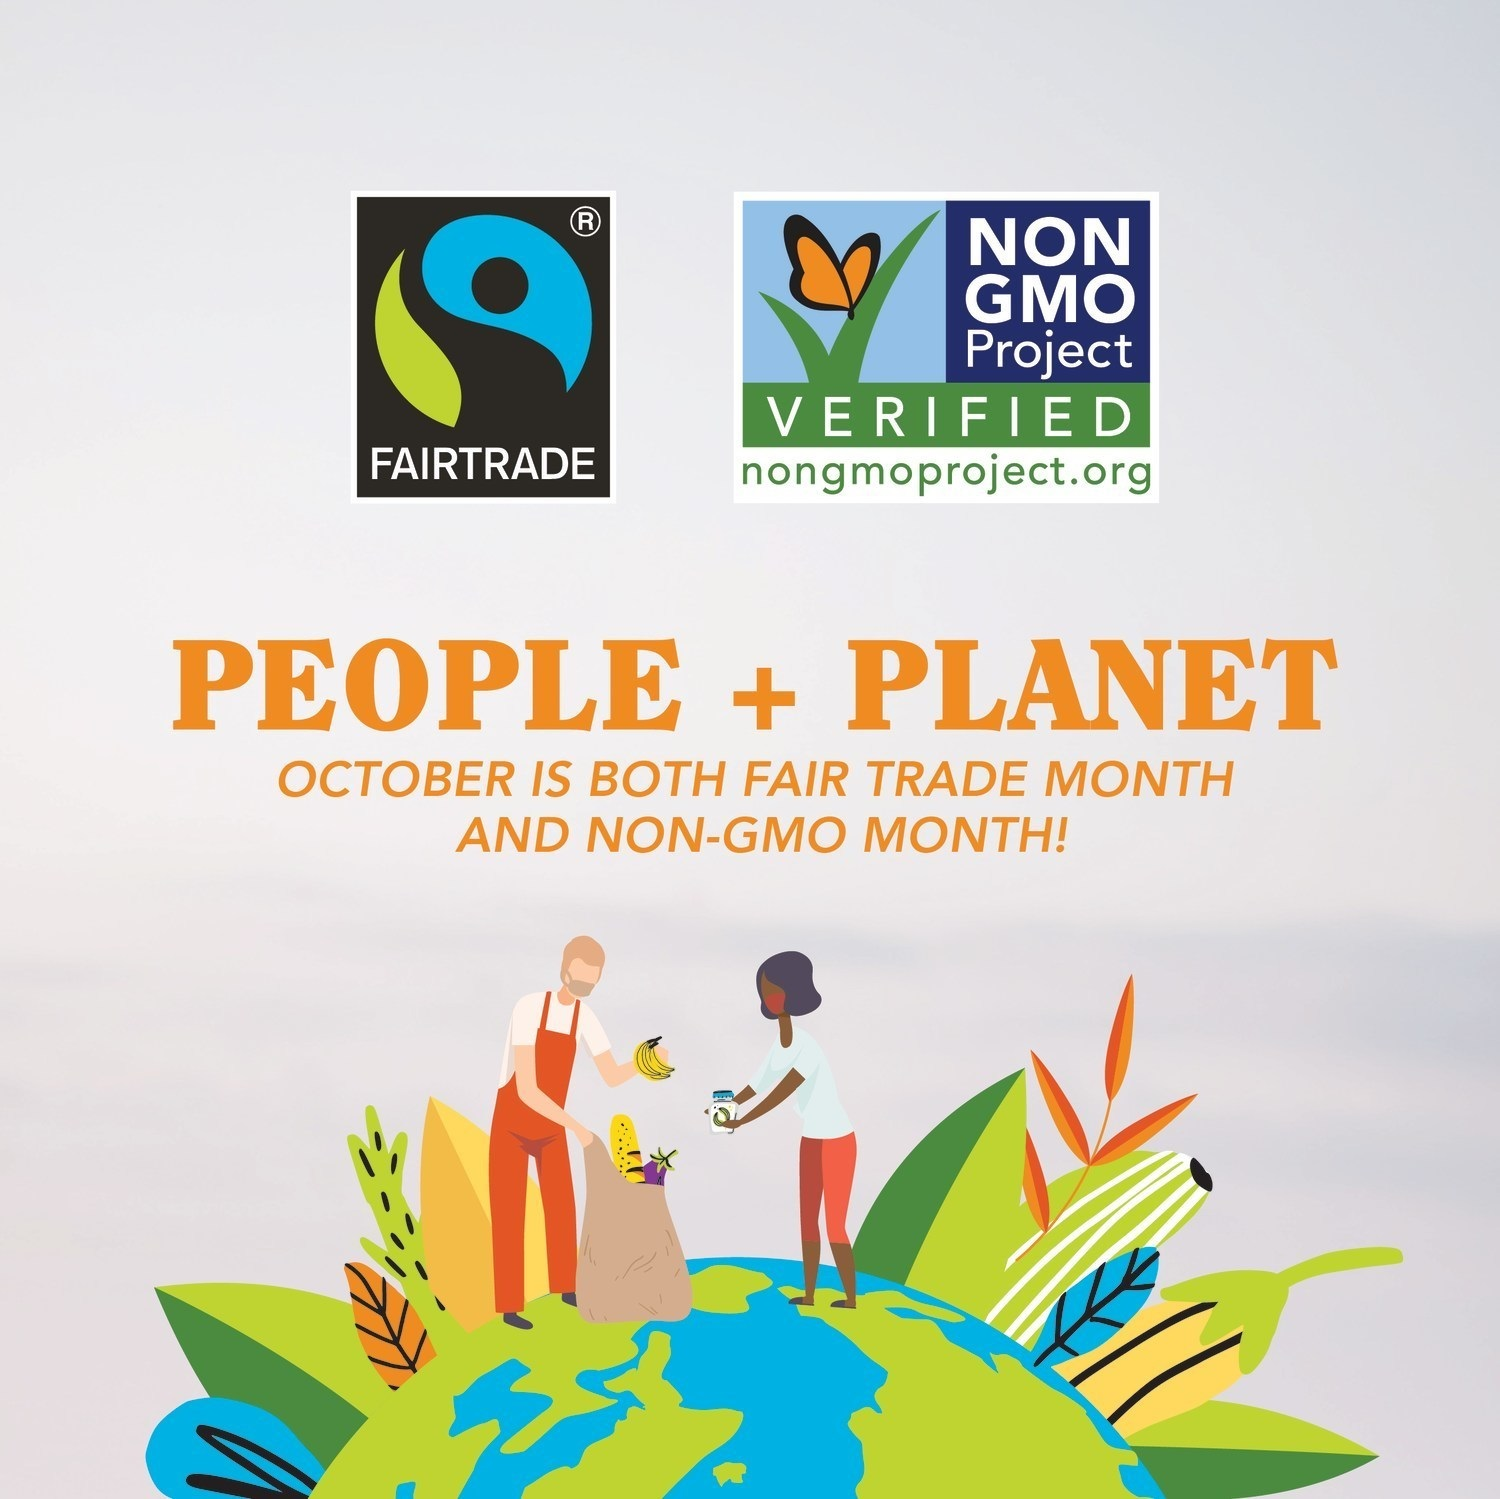 People + Planet